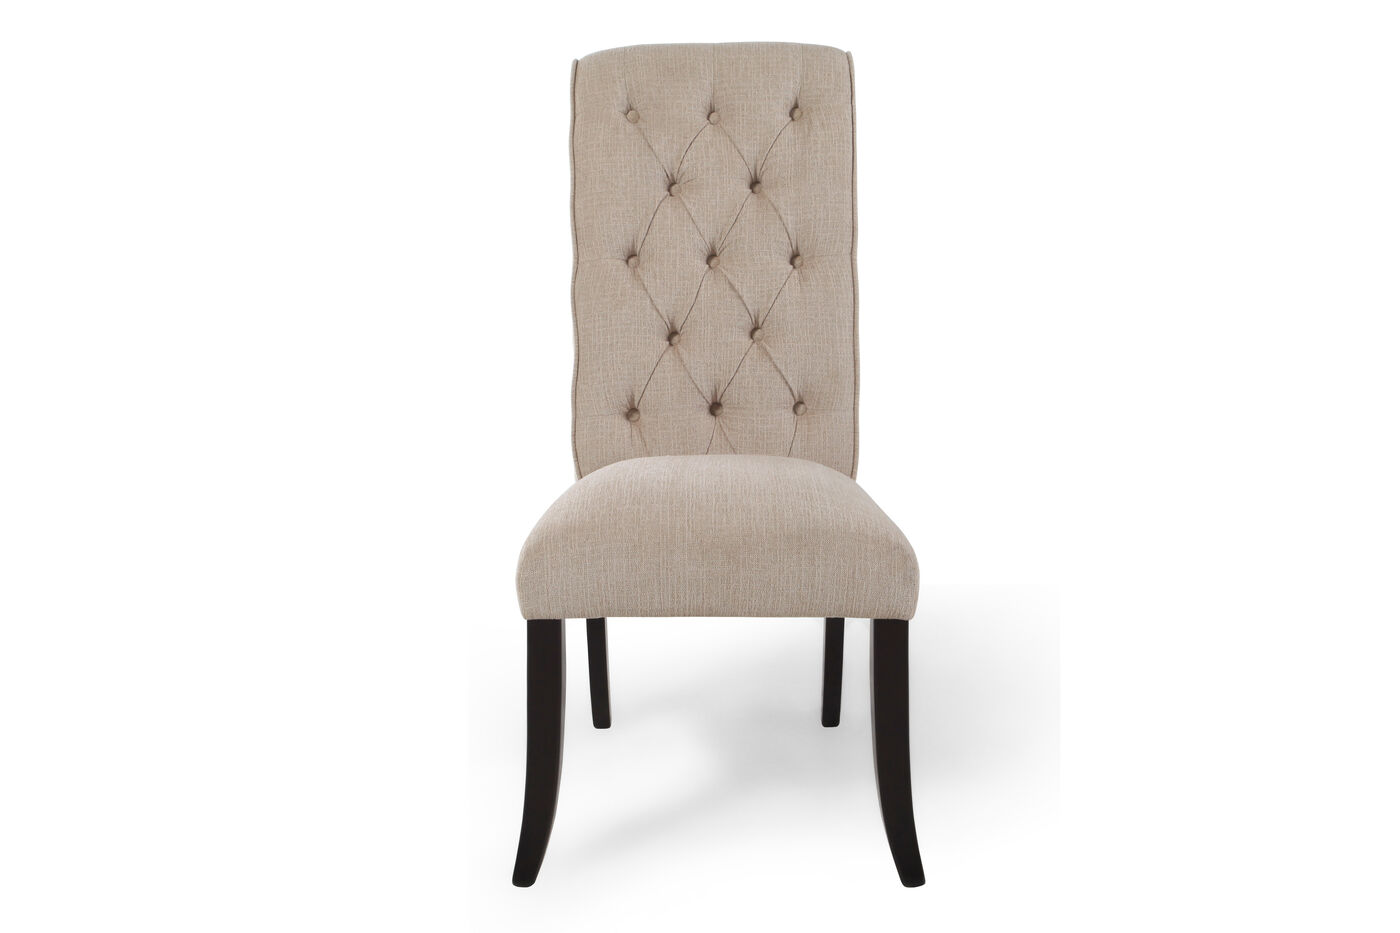 Diamond Button Tufted 43 Dining Side Chair in Beige  : IMG5880 from www.mathisbrothers.com size 1400 x 933 jpeg 56kB